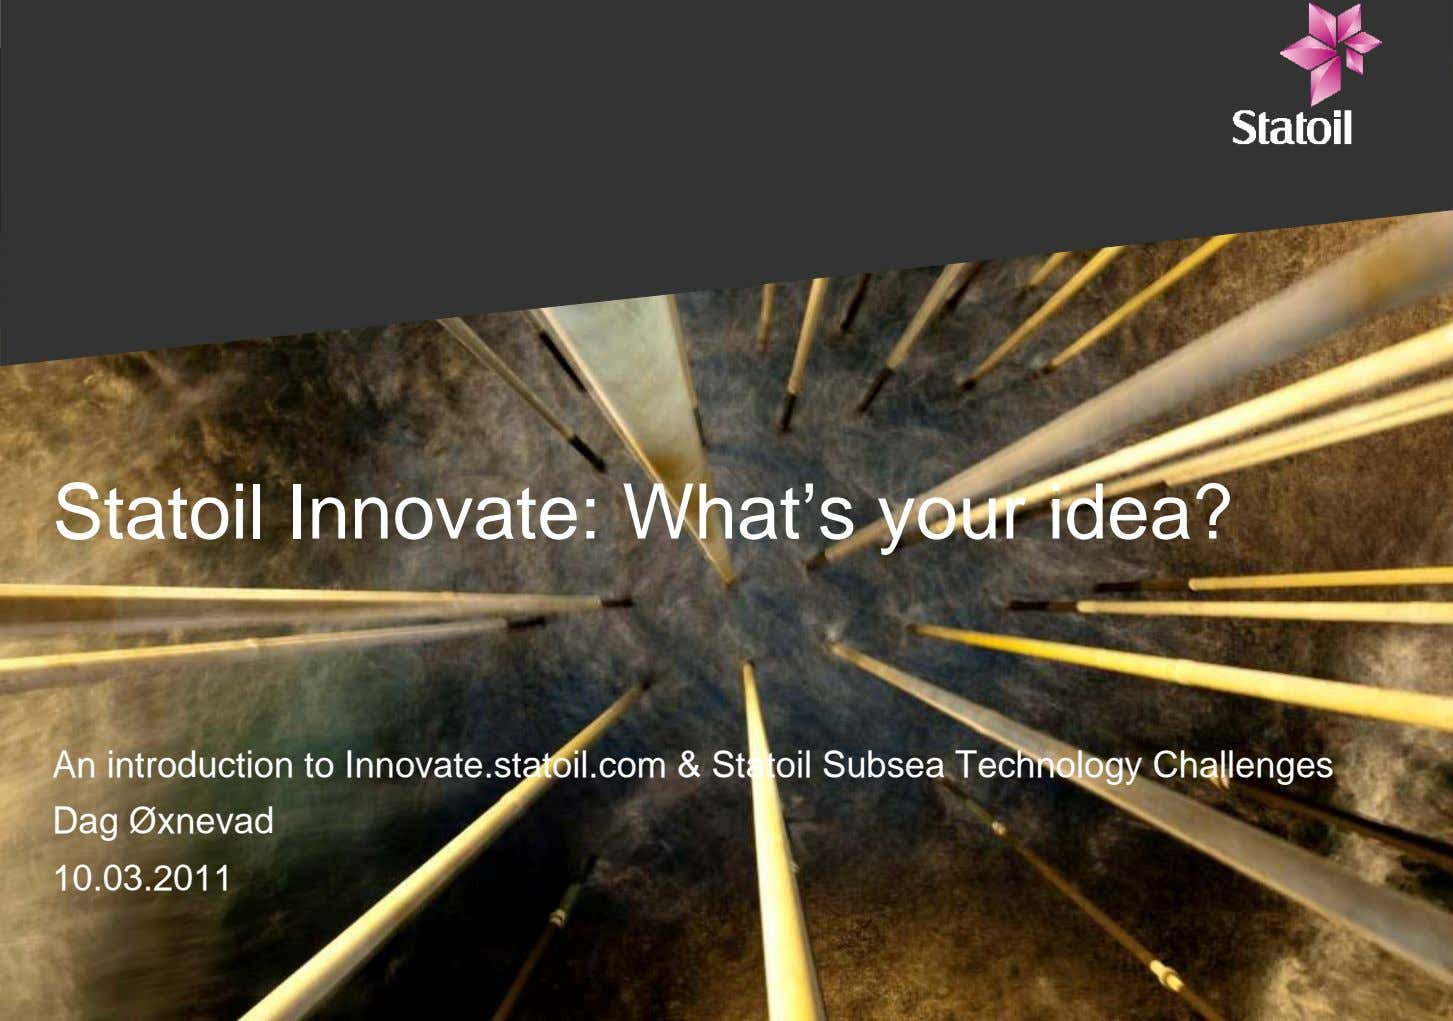 Statoil Innovate: What's your idea? An introduction to Innovate.statoil.com & Statoil Subsea Technology Challenges